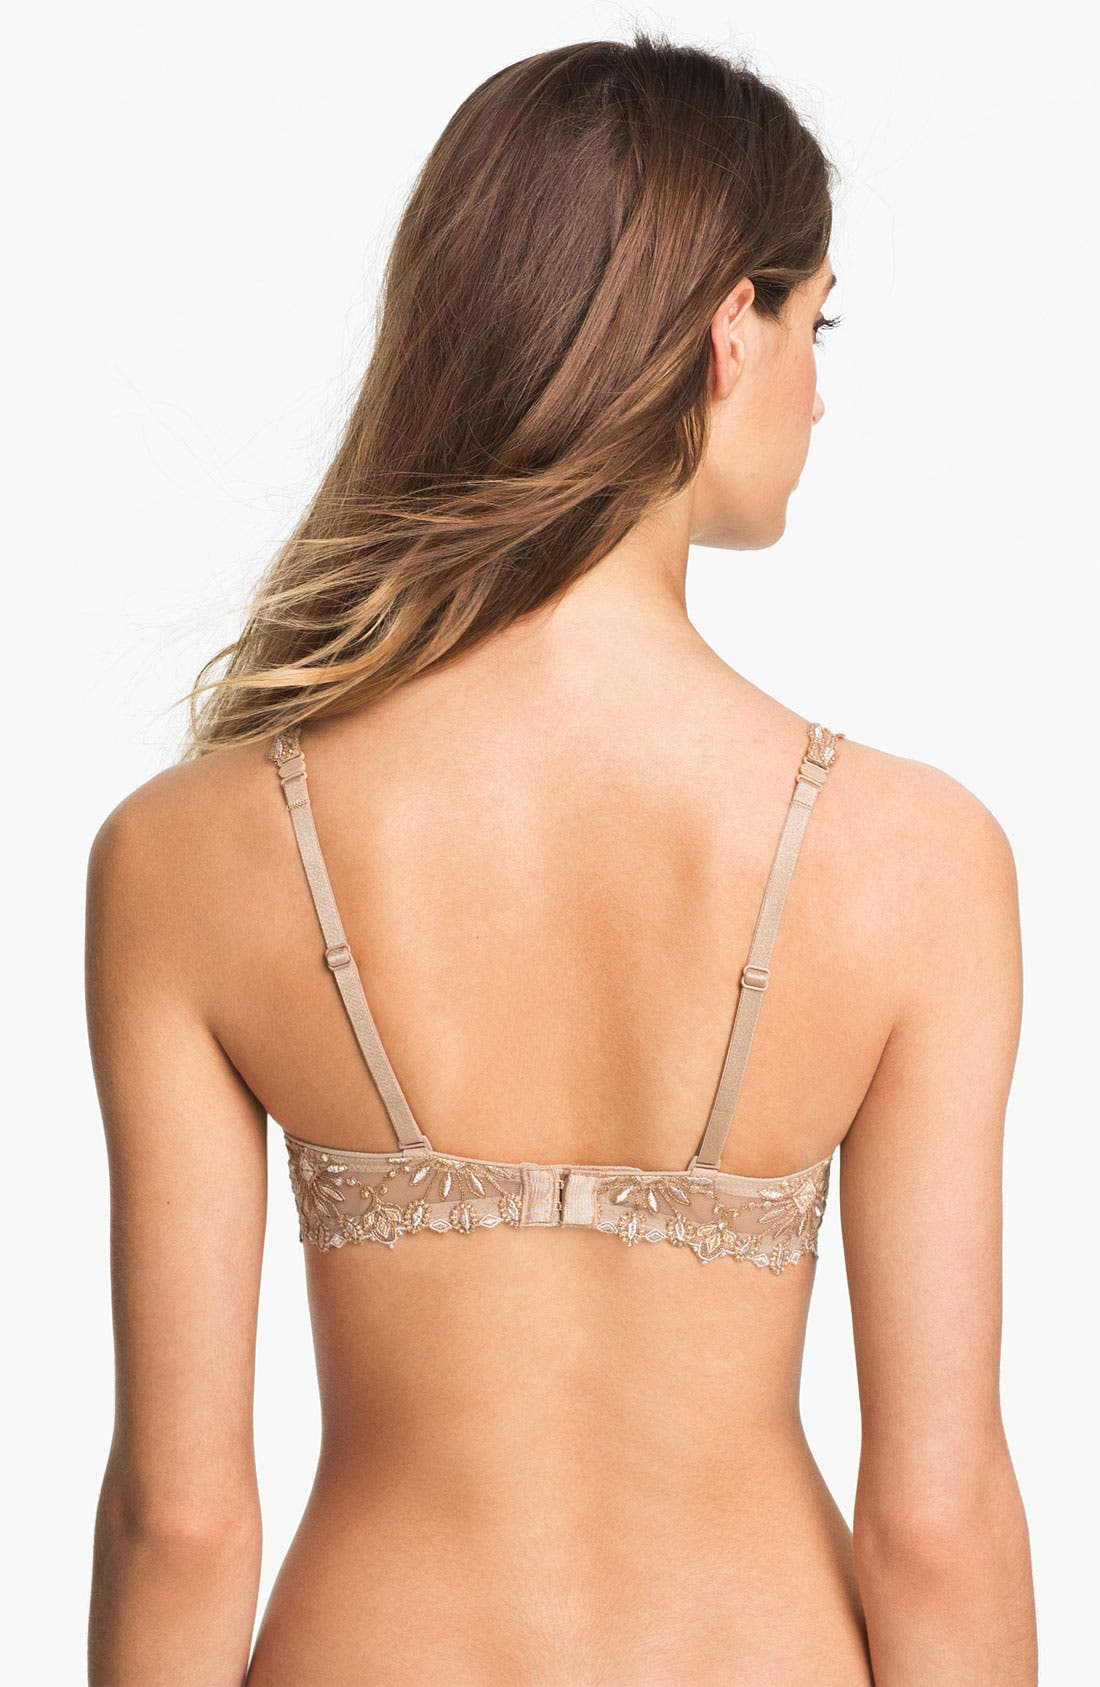 Alternate Image 2  - Chantelle Intimates 'Vendôme' Convertible Underwire T-Shirt Bra